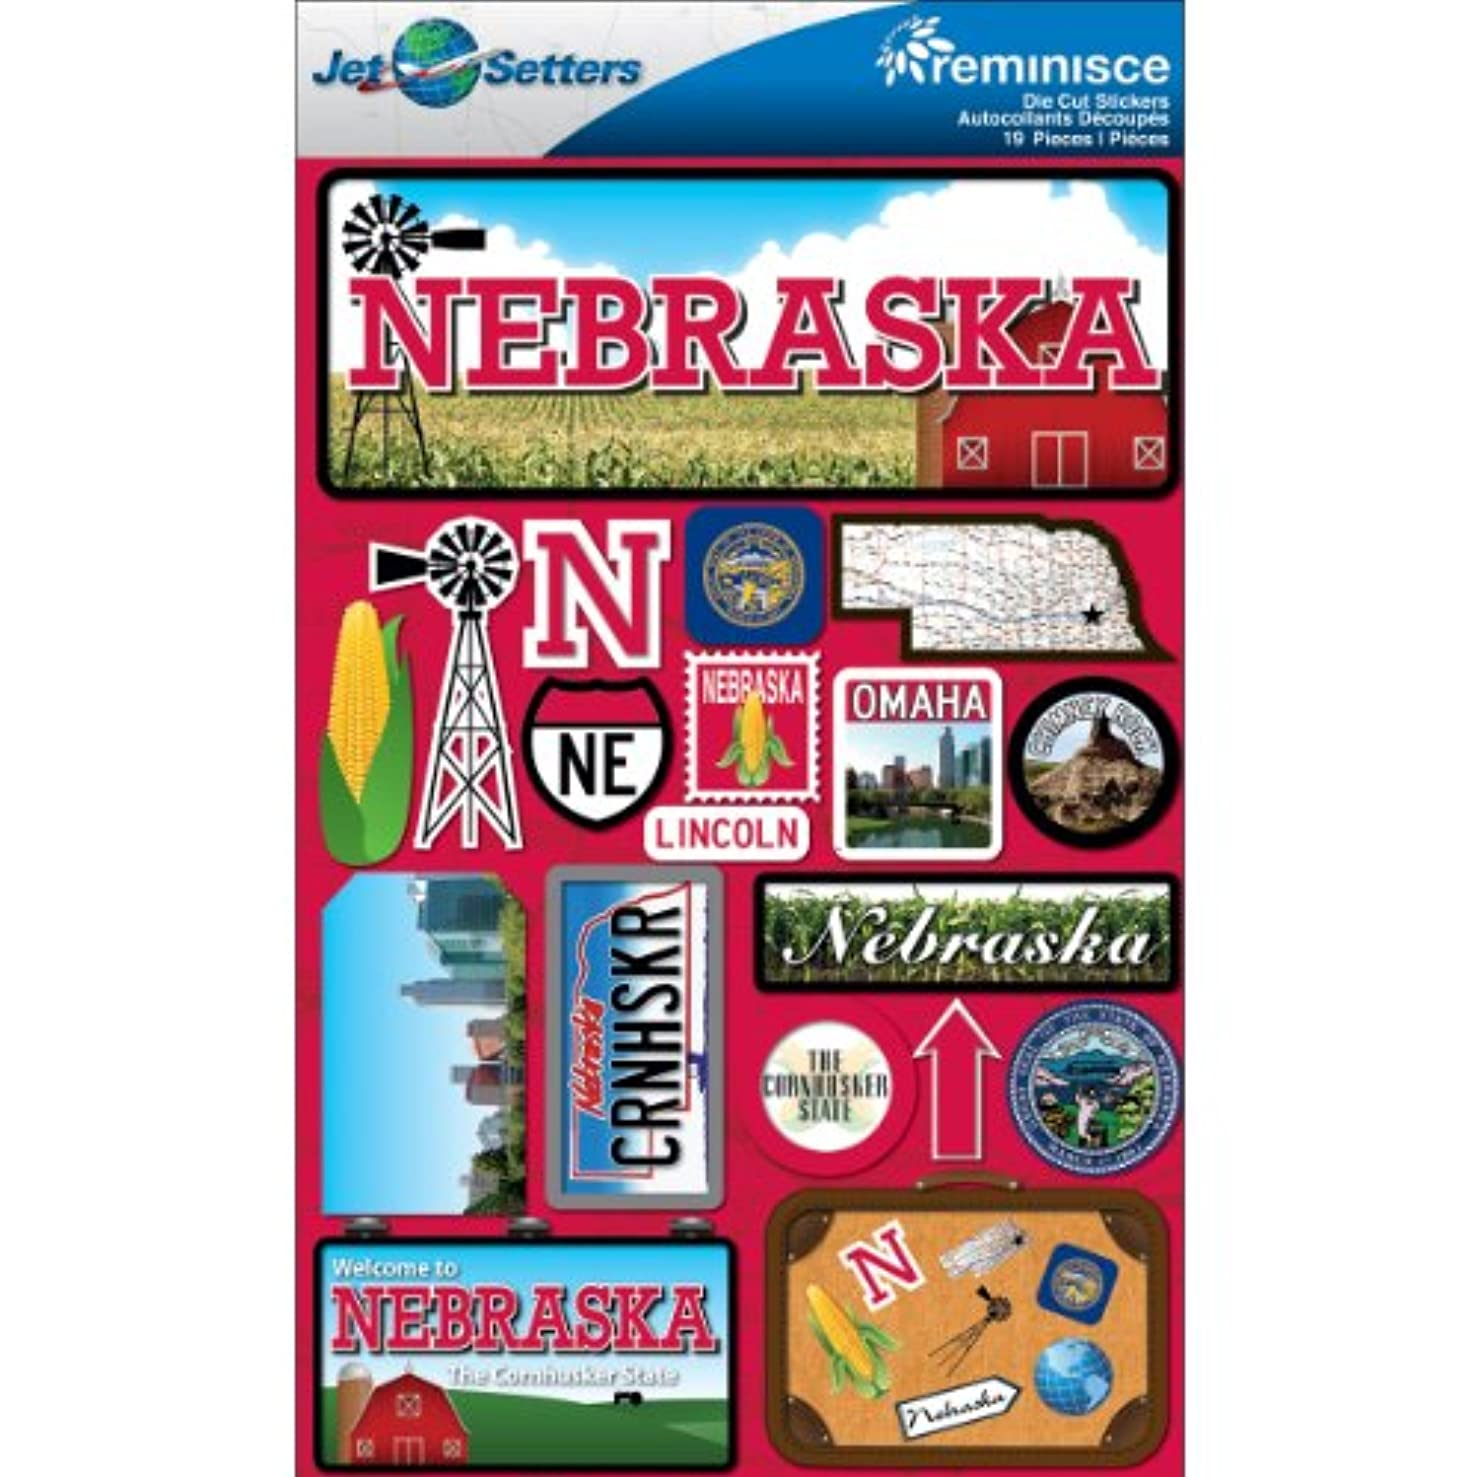 Reminisce Jet Setters Dimensional Stickers-Nebraska